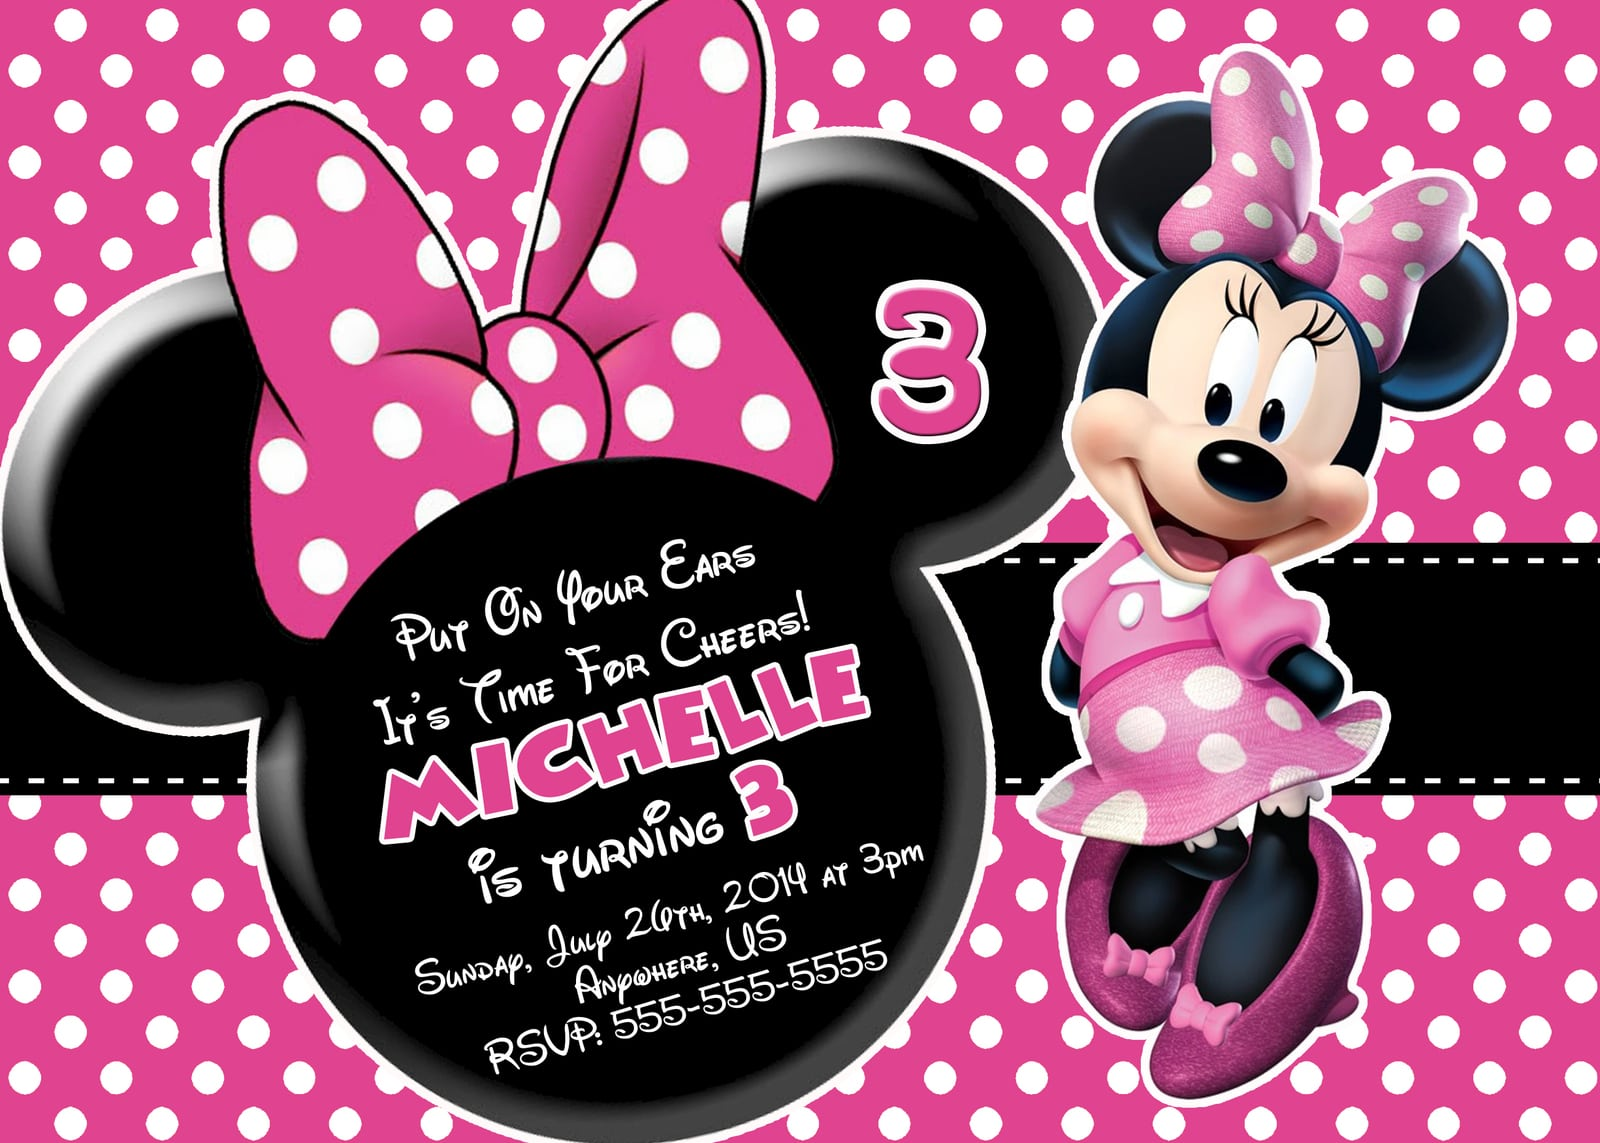 Party Invitations  Stunning Minnie Mouse Party Invitations Ideas